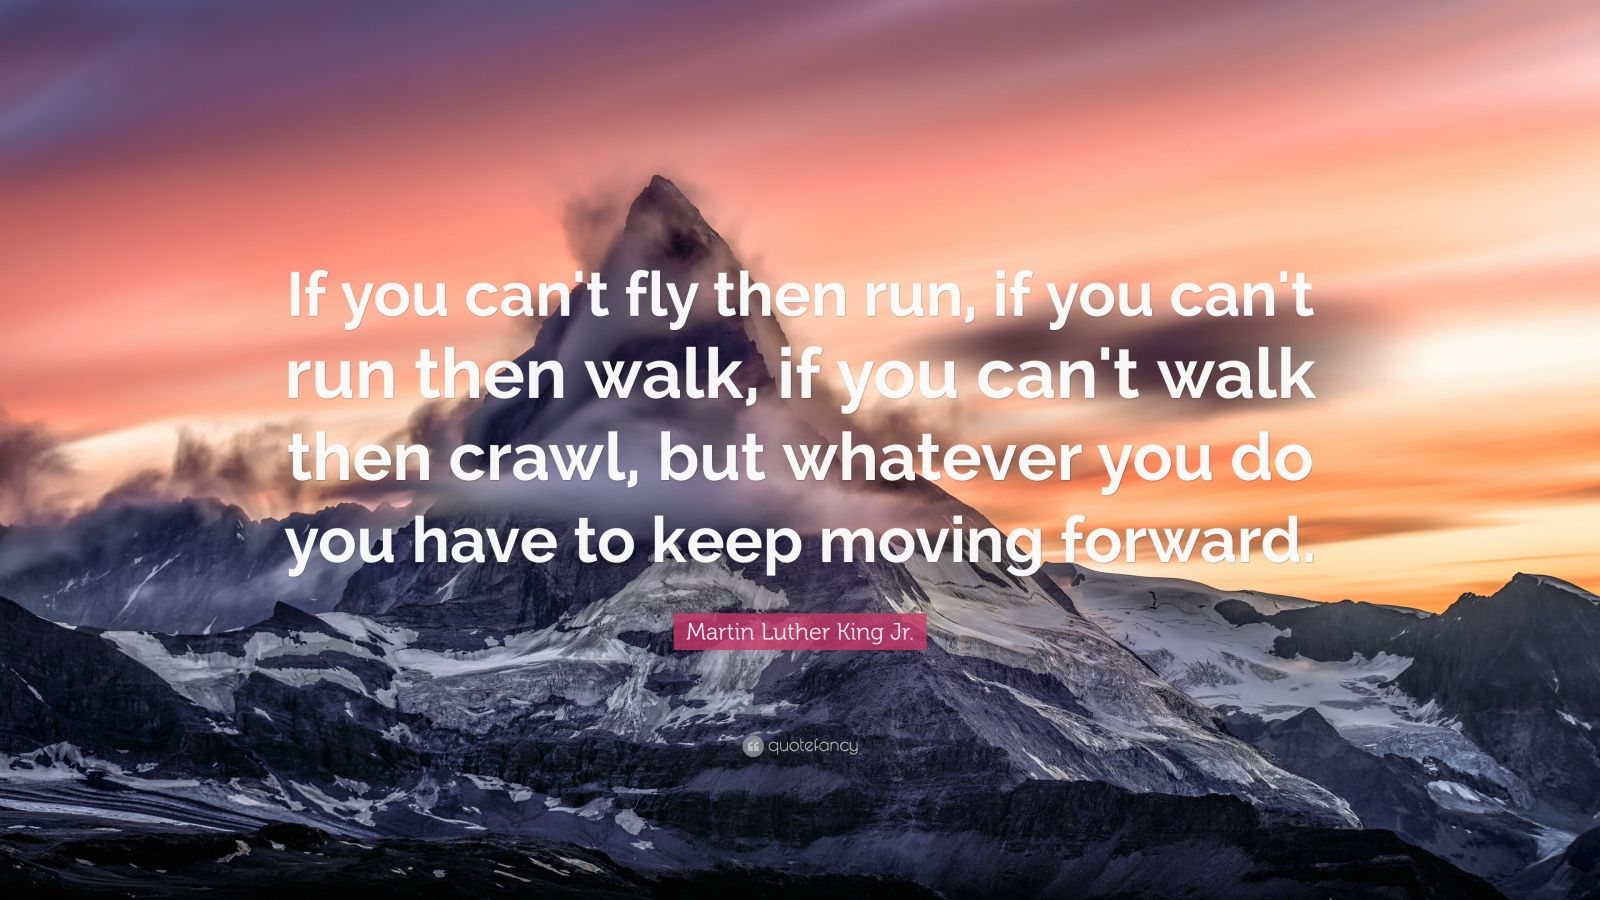 Arnold Schwarzenegger Wallpaper Quotes Martin Luther King Jr Quote If You Can T Fly Then Run